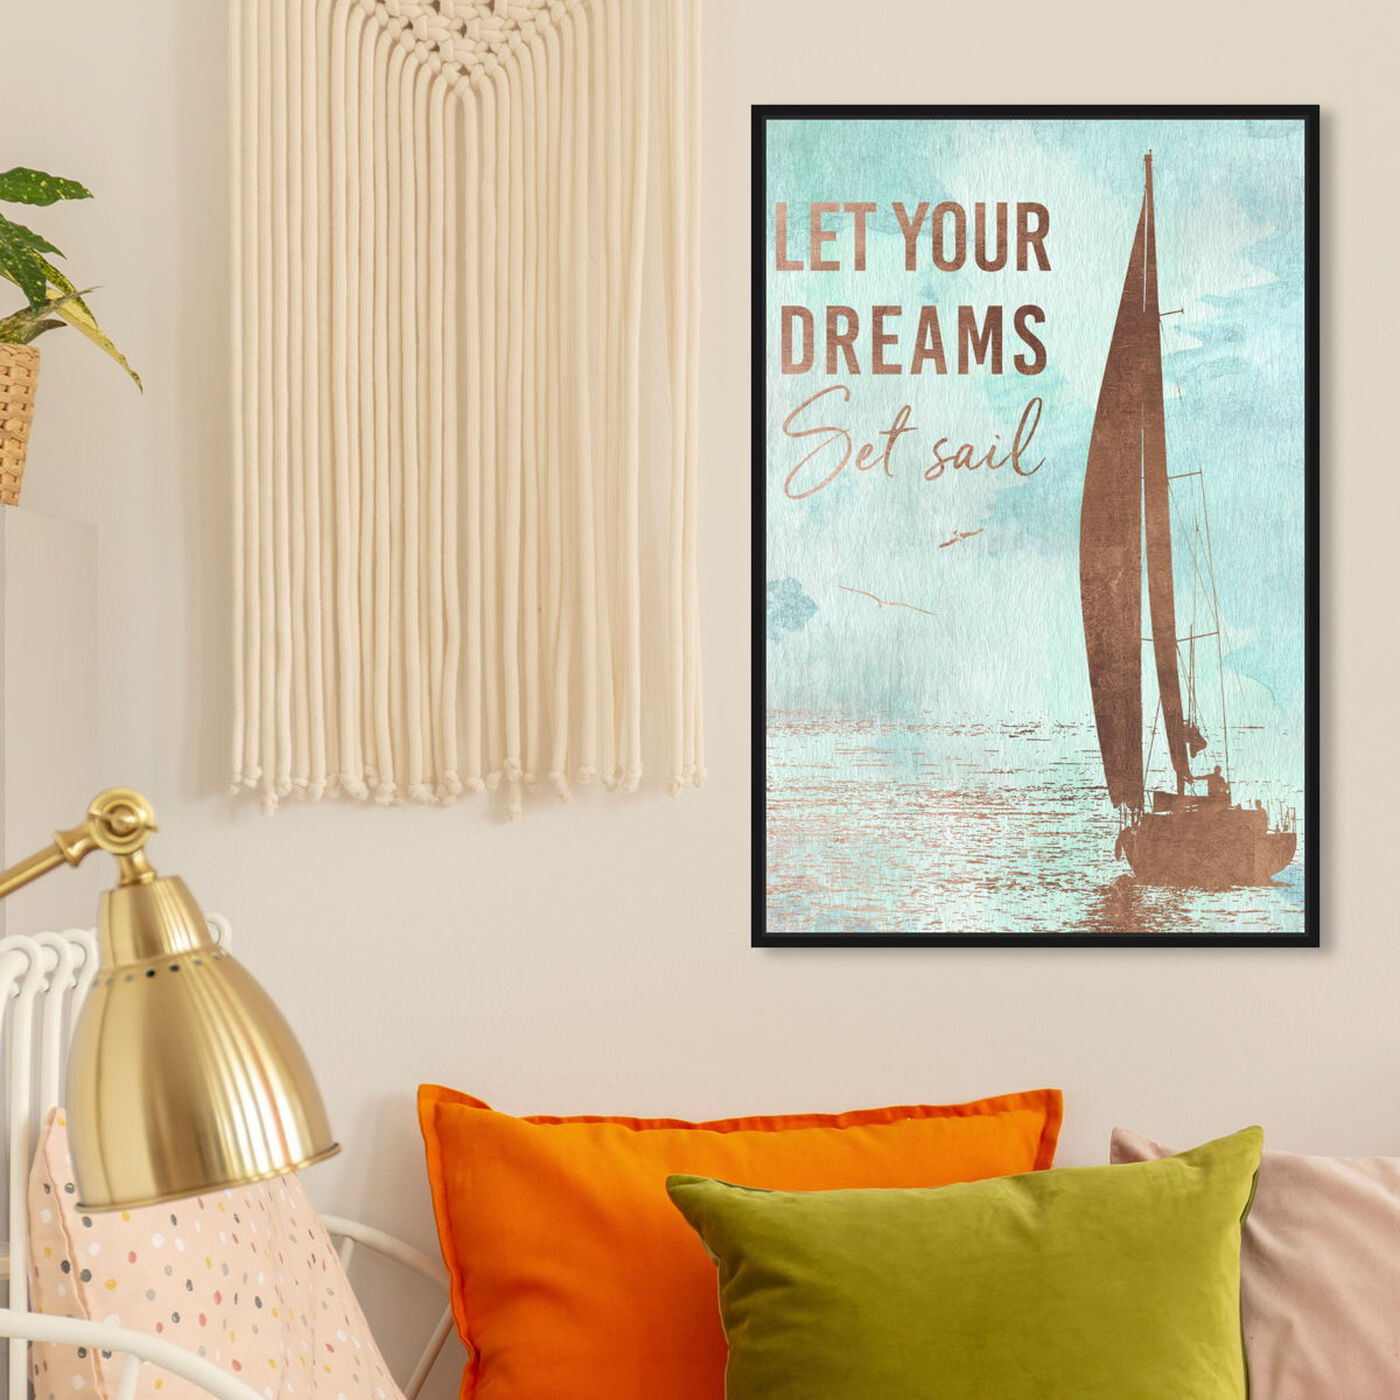 Hanging view of Dream Boat featuring transportation and boats and yachts art.